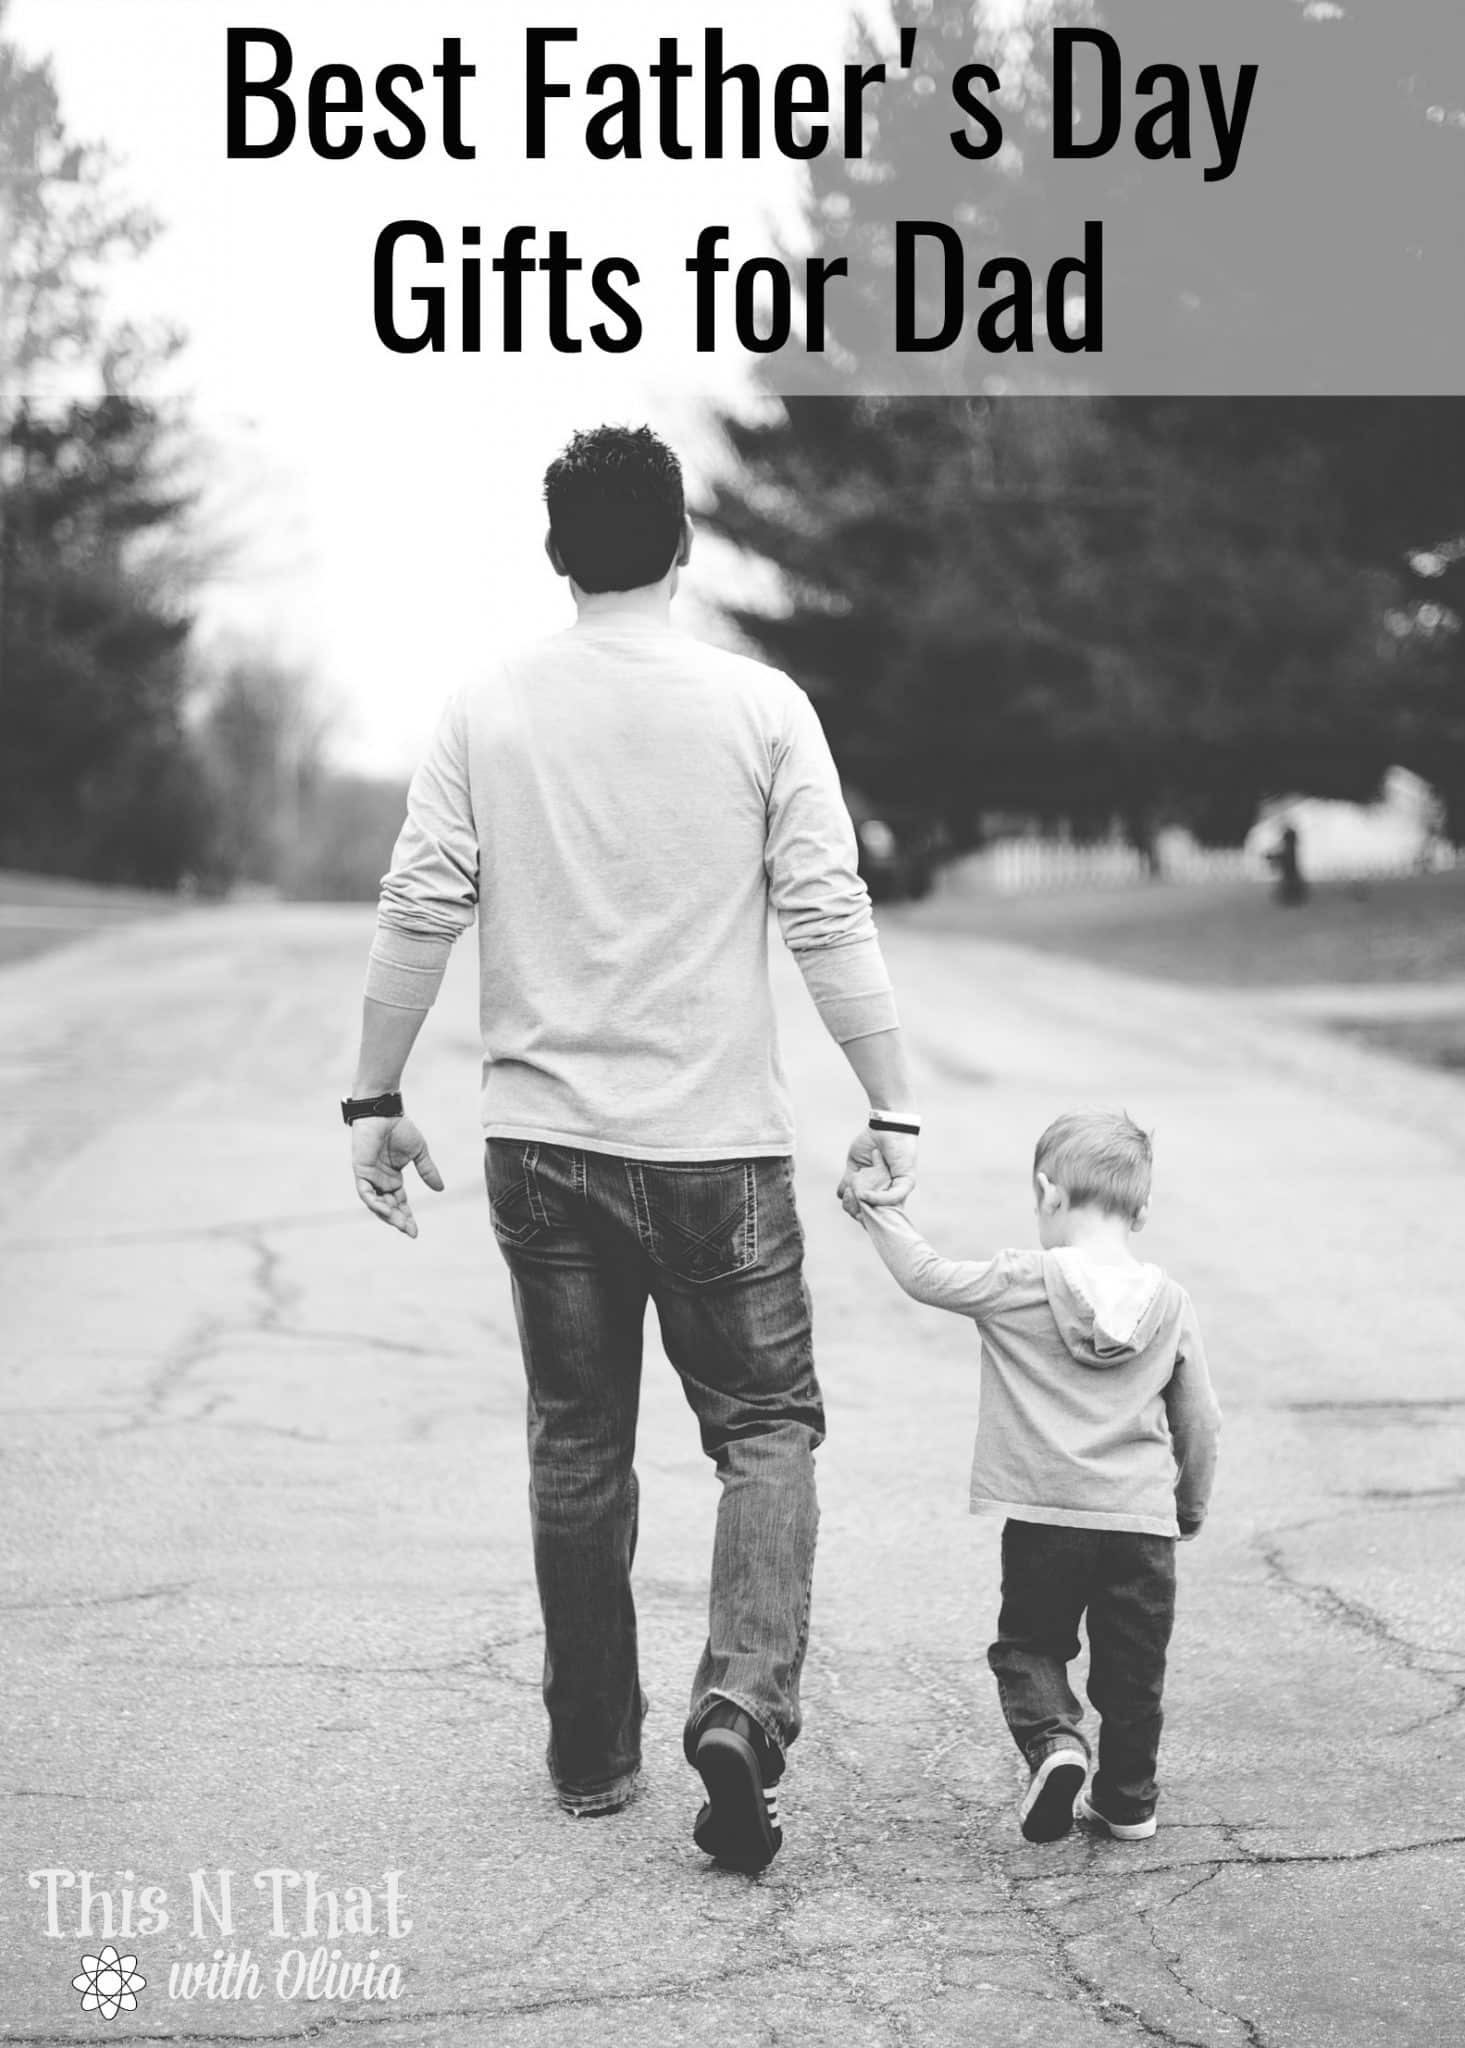 Best Father's Day Gifts for Dad 2017! #FathersDay #THBGG #ad